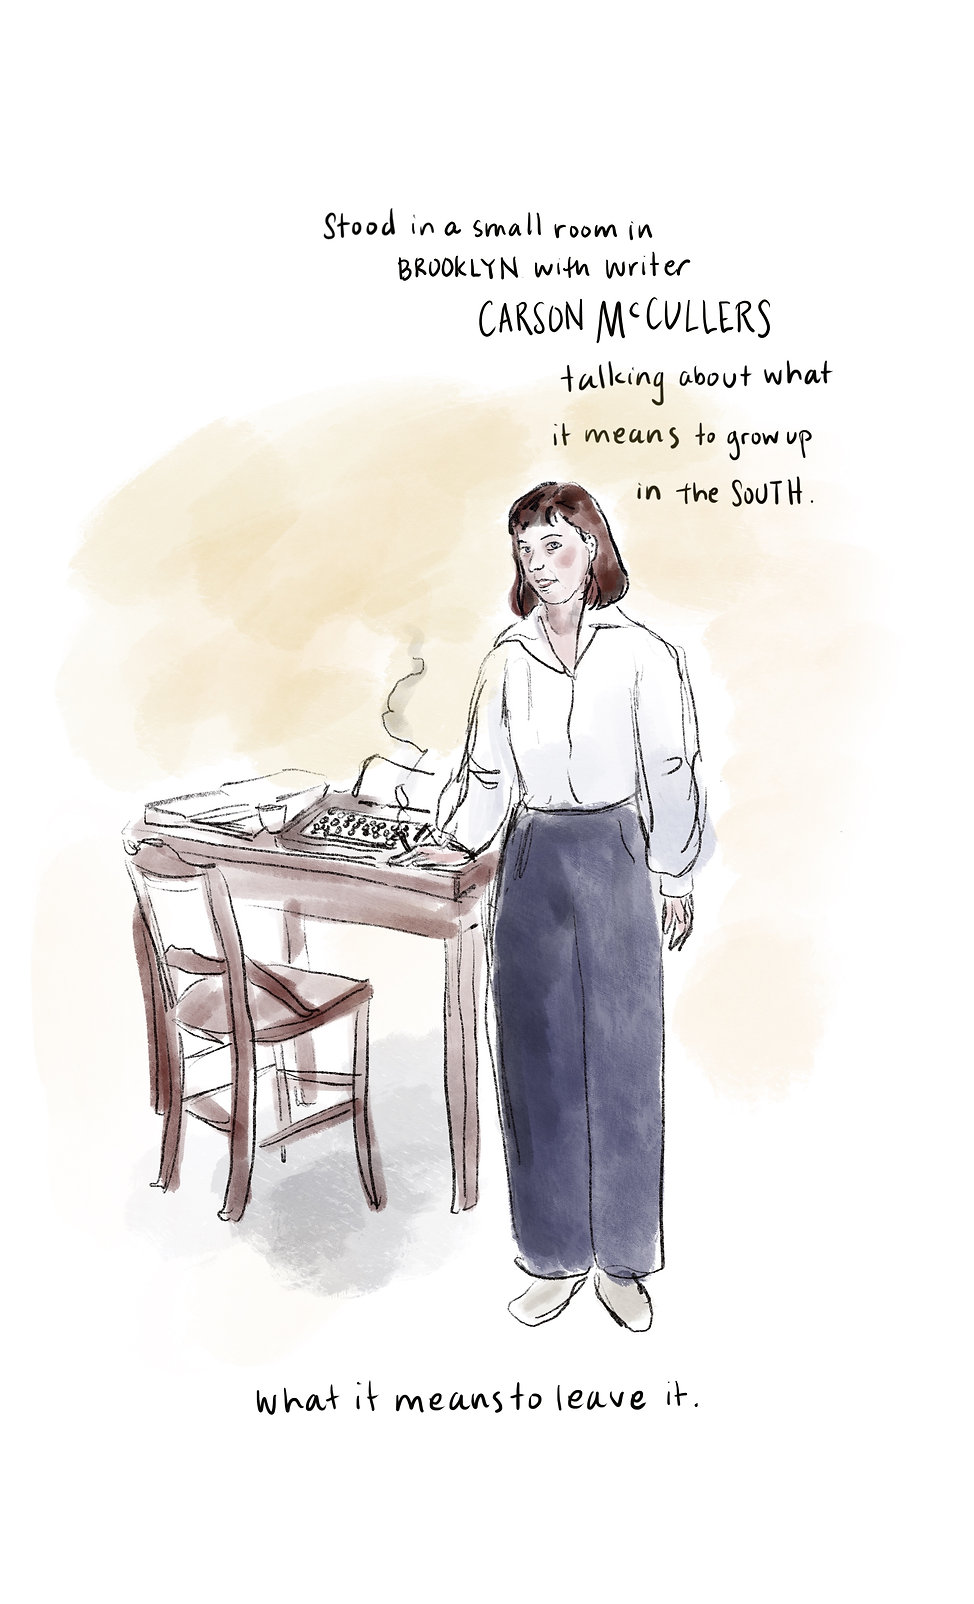 Illustration of writer Csrson McCullers standing next to a desk with a typewriter on it and handlettered text that reads: Stood in a small room in BROOKLYN with writer Carson McCullers talking about what it means to group up in the South. What it means to leave it.